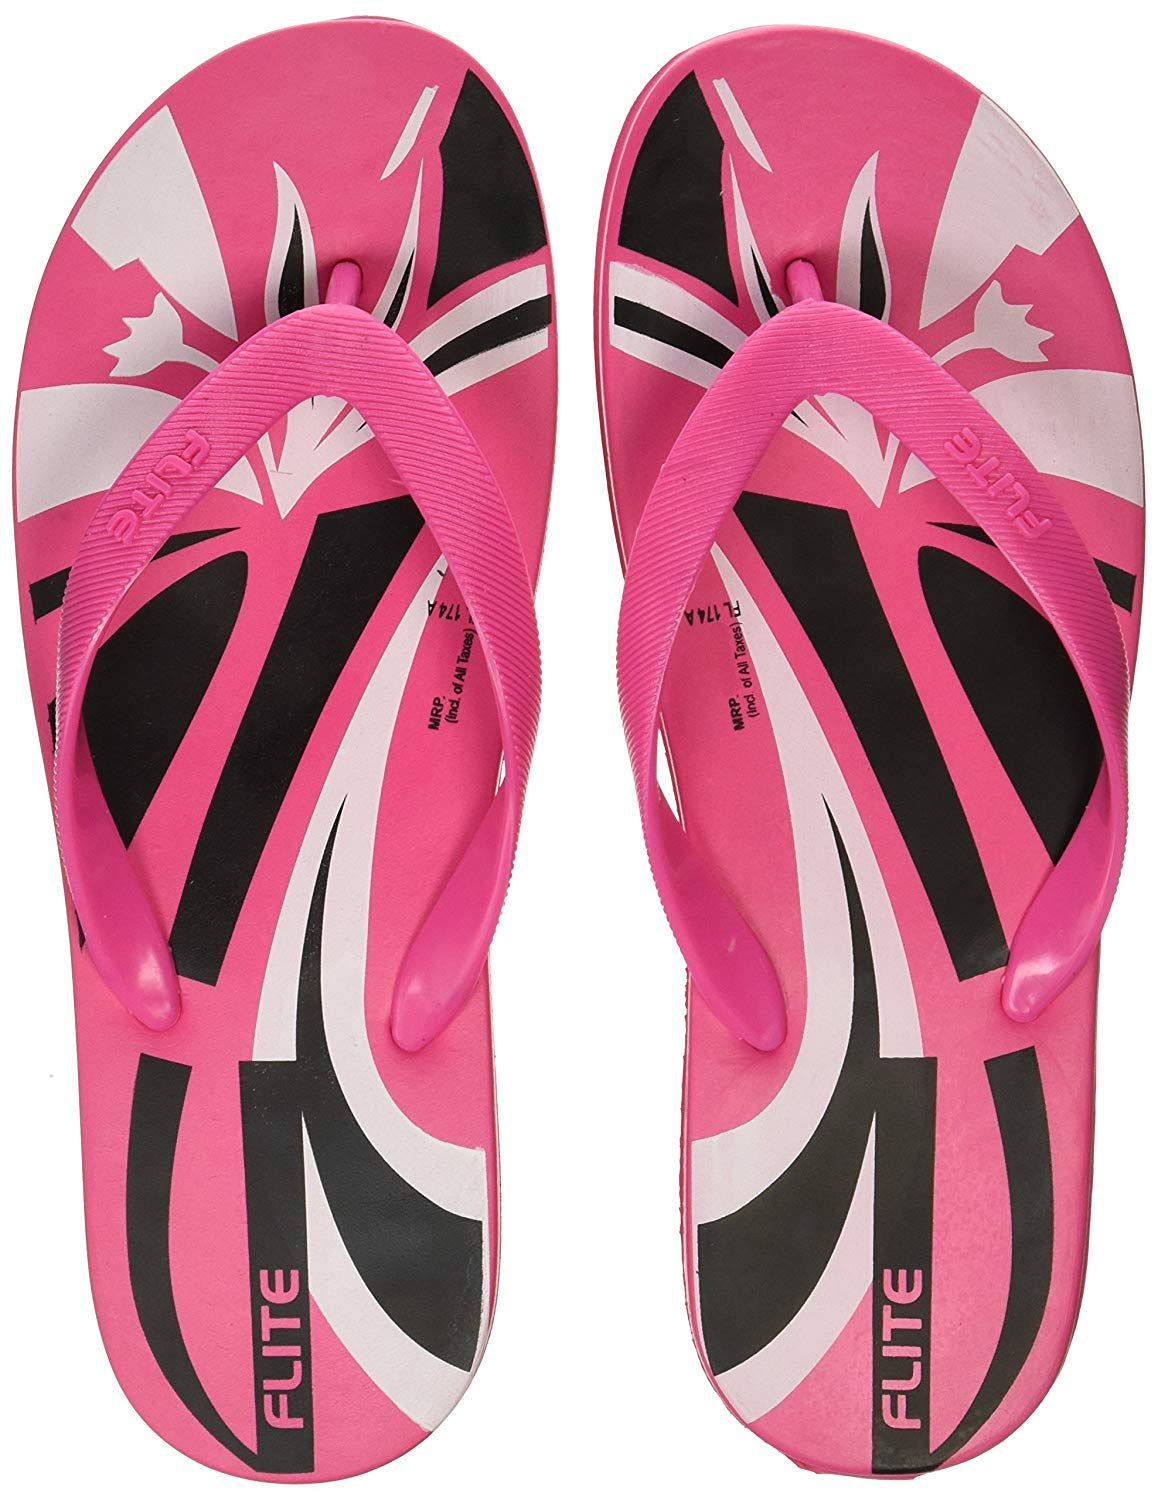 6f73b442e Price  139.50 Sale  125.00 Details You Save  14.50 (10%) FLITE Women s  Slippers